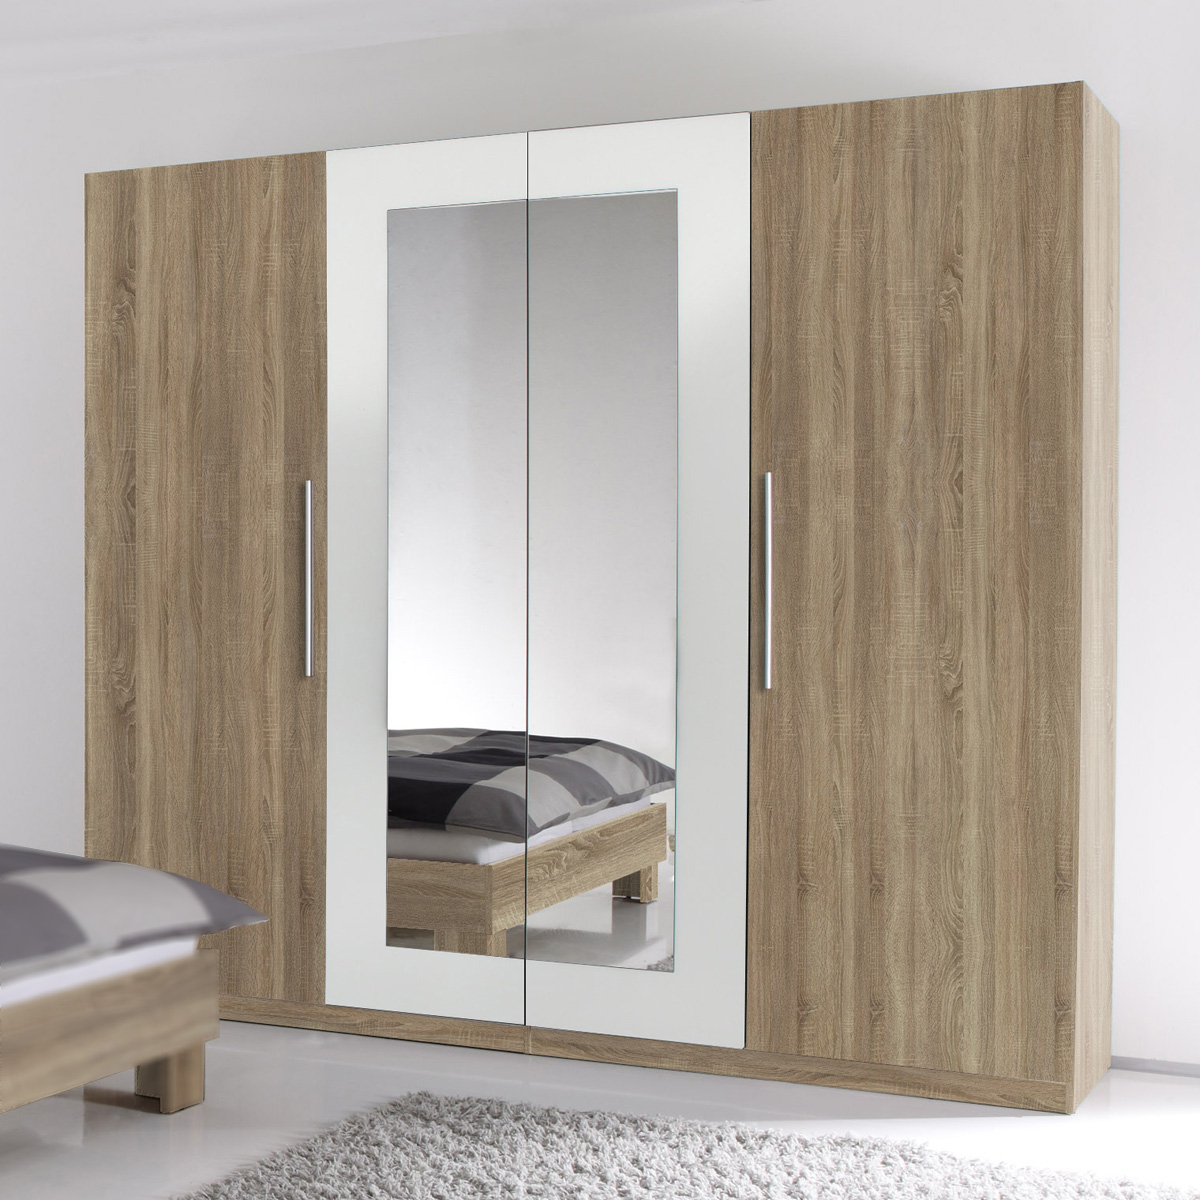 kleiderschrank martina schrank sonoma eiche s gerau und wei mit spiegel 228 cm eur 299 00. Black Bedroom Furniture Sets. Home Design Ideas